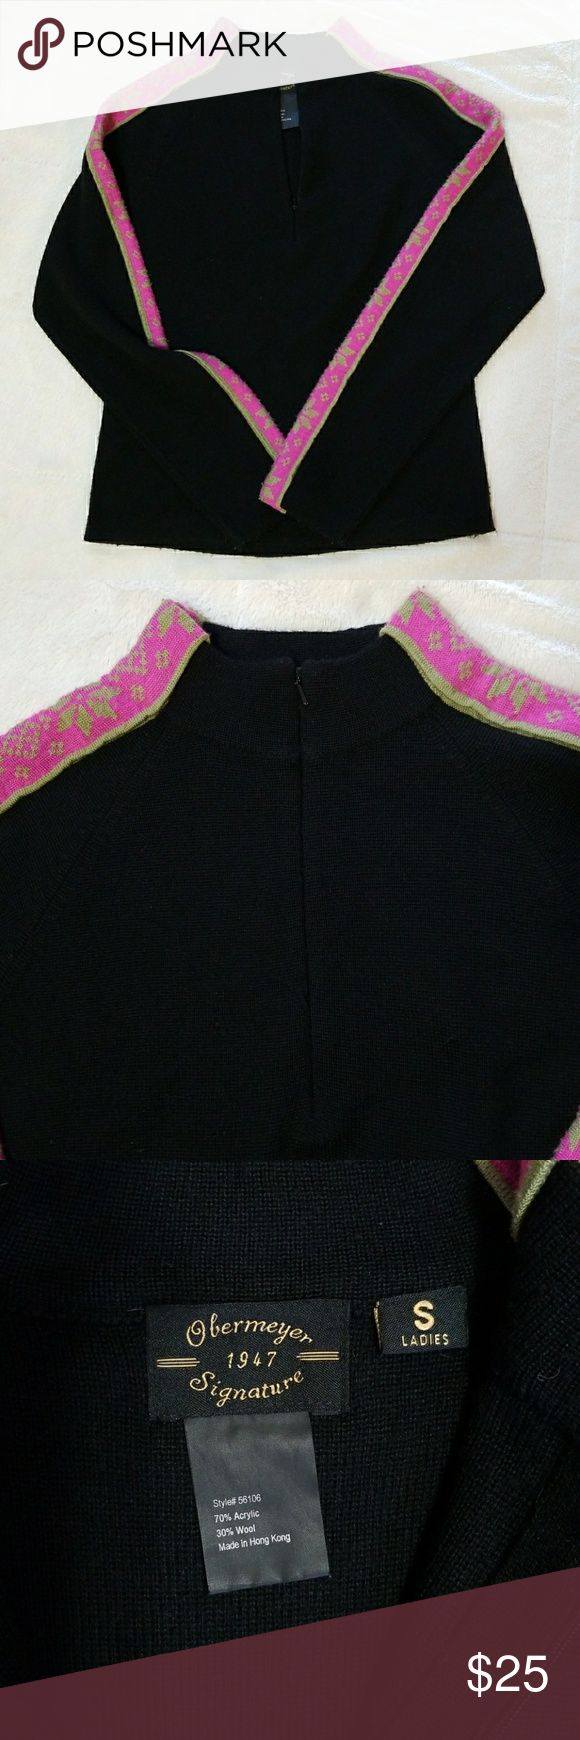 "Obermeyer Black & Pink Zip Ski Sweater Small Obermeyer Ski sweater for ladies.  Black with pink stripe on arm with winter design. 1/4 zip pullover style.  Has stretch!  Acrylic and wool blend. Good condition. No holes or tears.  Flat measurements:  Armpit to Armpit 17"" Length (top of shoulder to bottom hem) 22"" Approx sleeve length 24"" Obermeyer Sweaters"